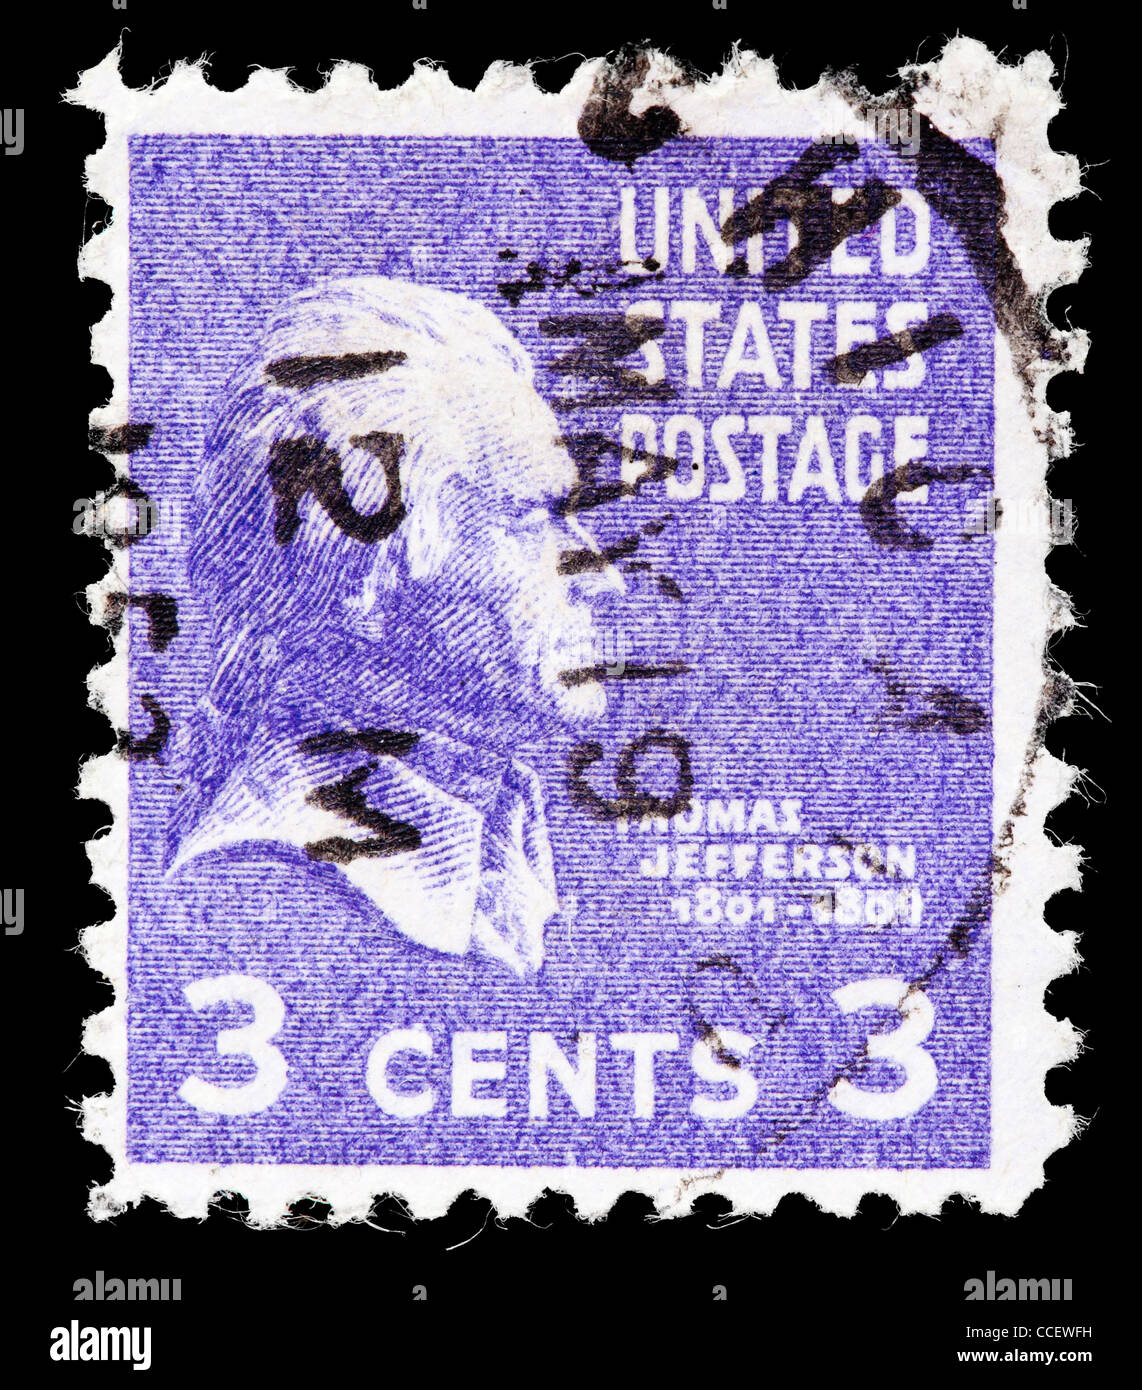 Postage Stamp United States Thomas Jefferson 3 Cent 1938 Stamped